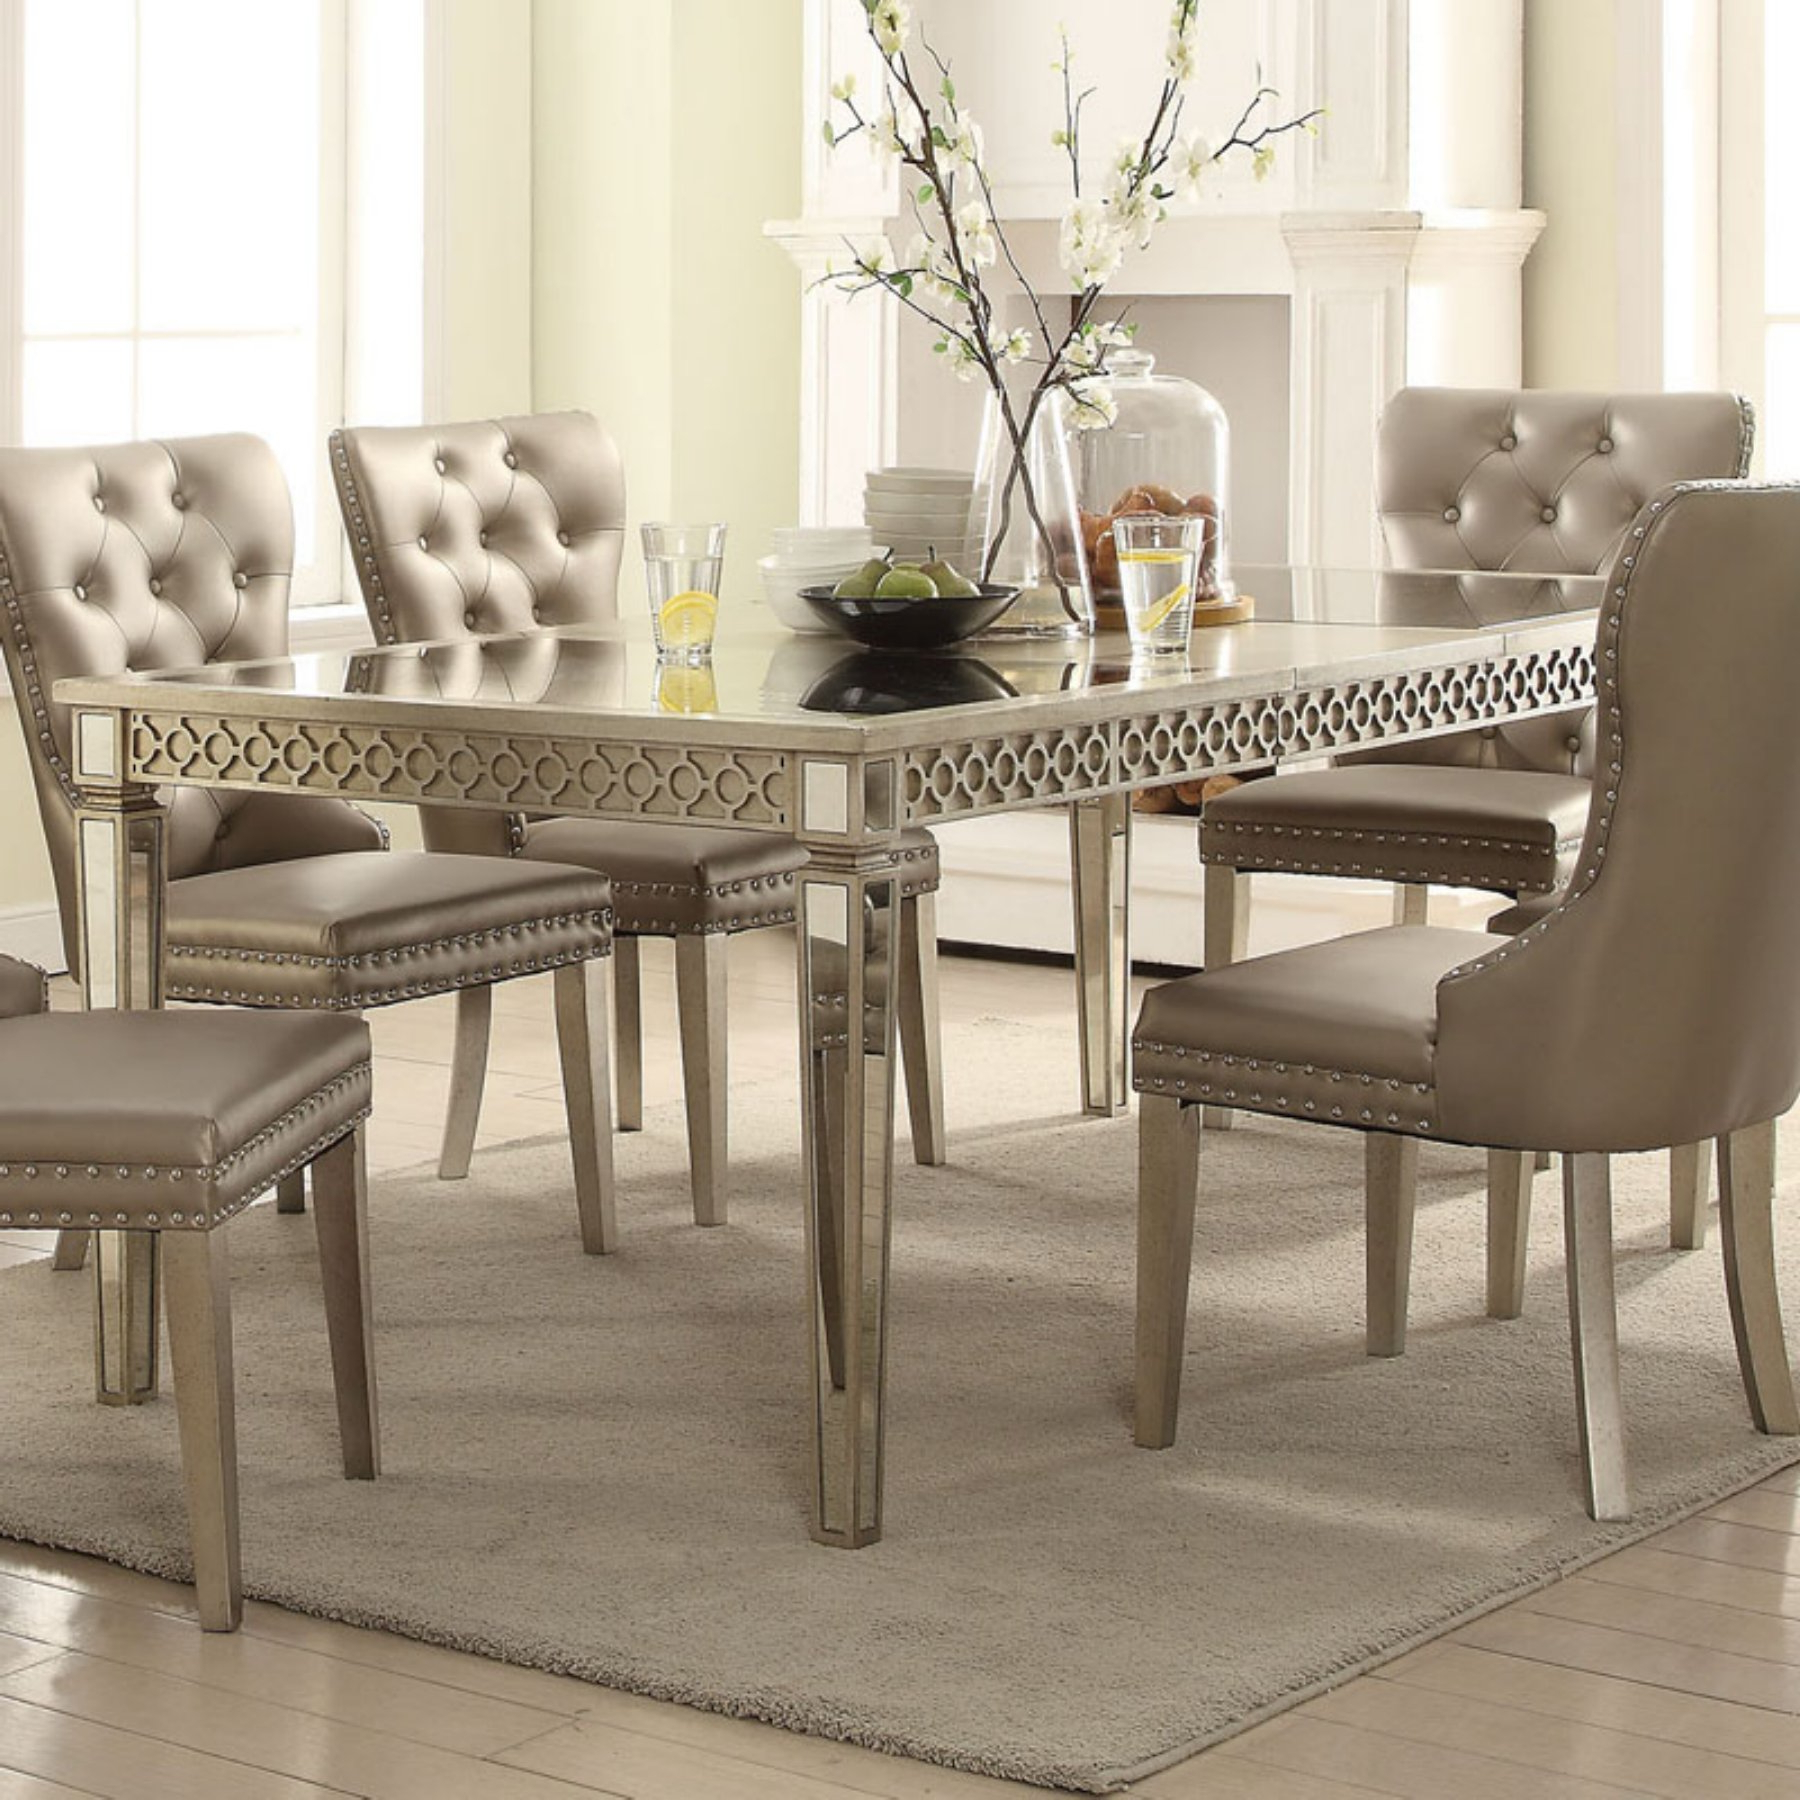 Lamotte 5 Piece Dining Sets For Well Liked Acme Furniture Kacela Extension Dining Table (View 3 of 25)